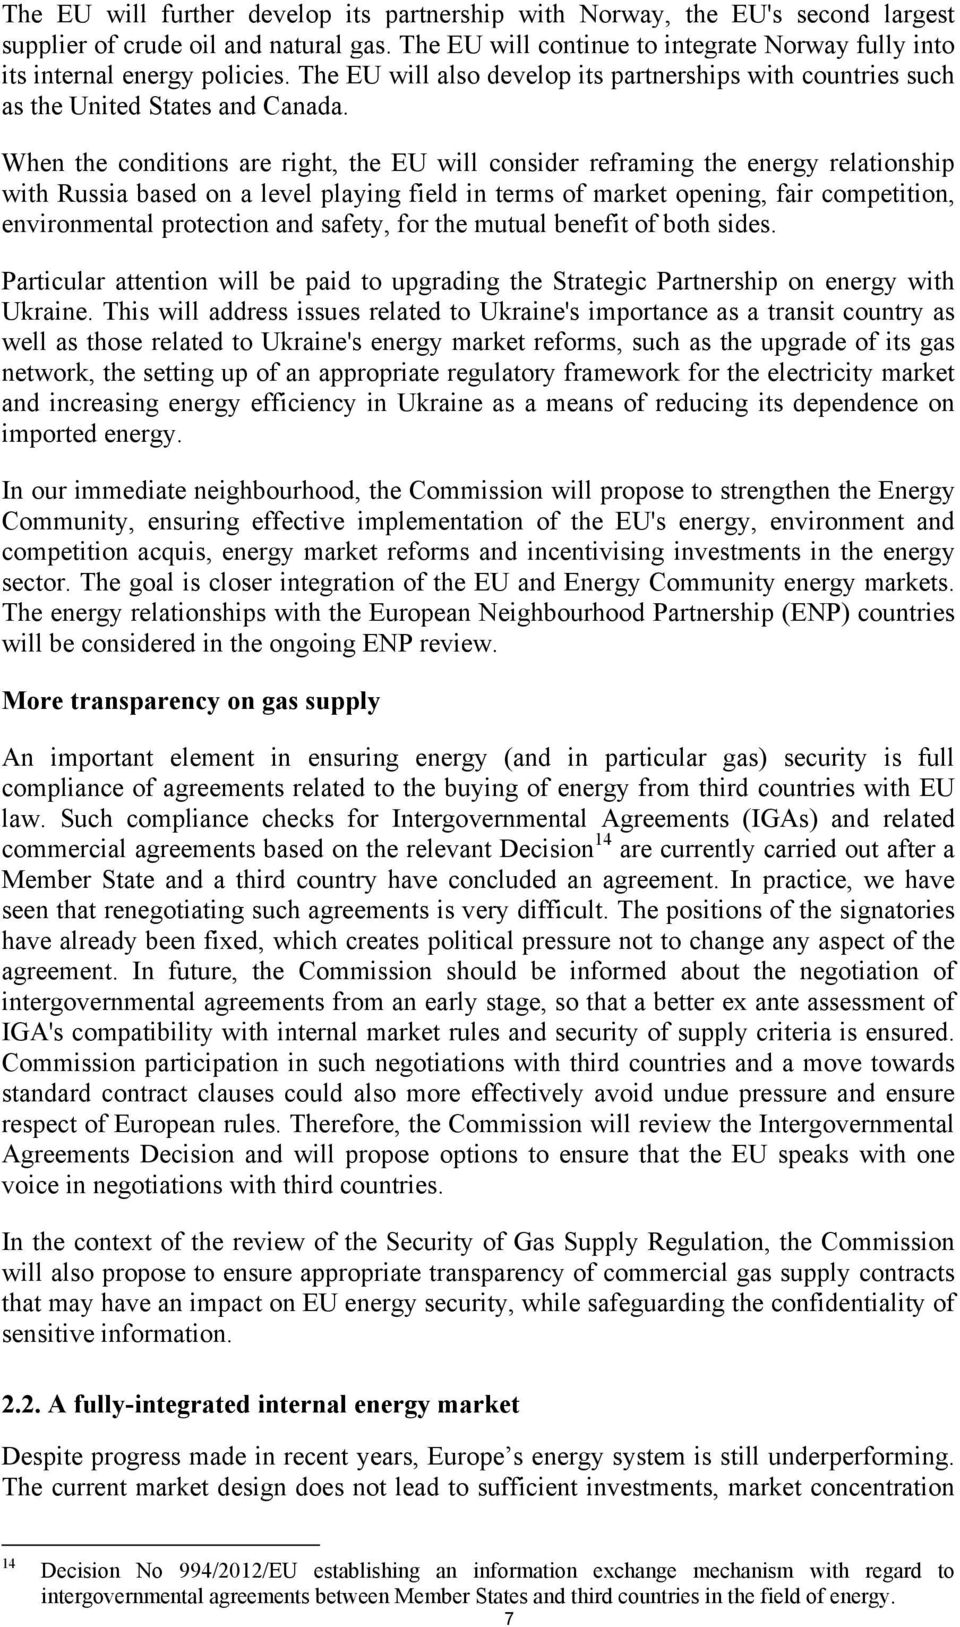 When the conditions are right, the EU will consider reframing the energy relationship with Russia based on a level playing field in terms of market opening, fair competition, environmental protection